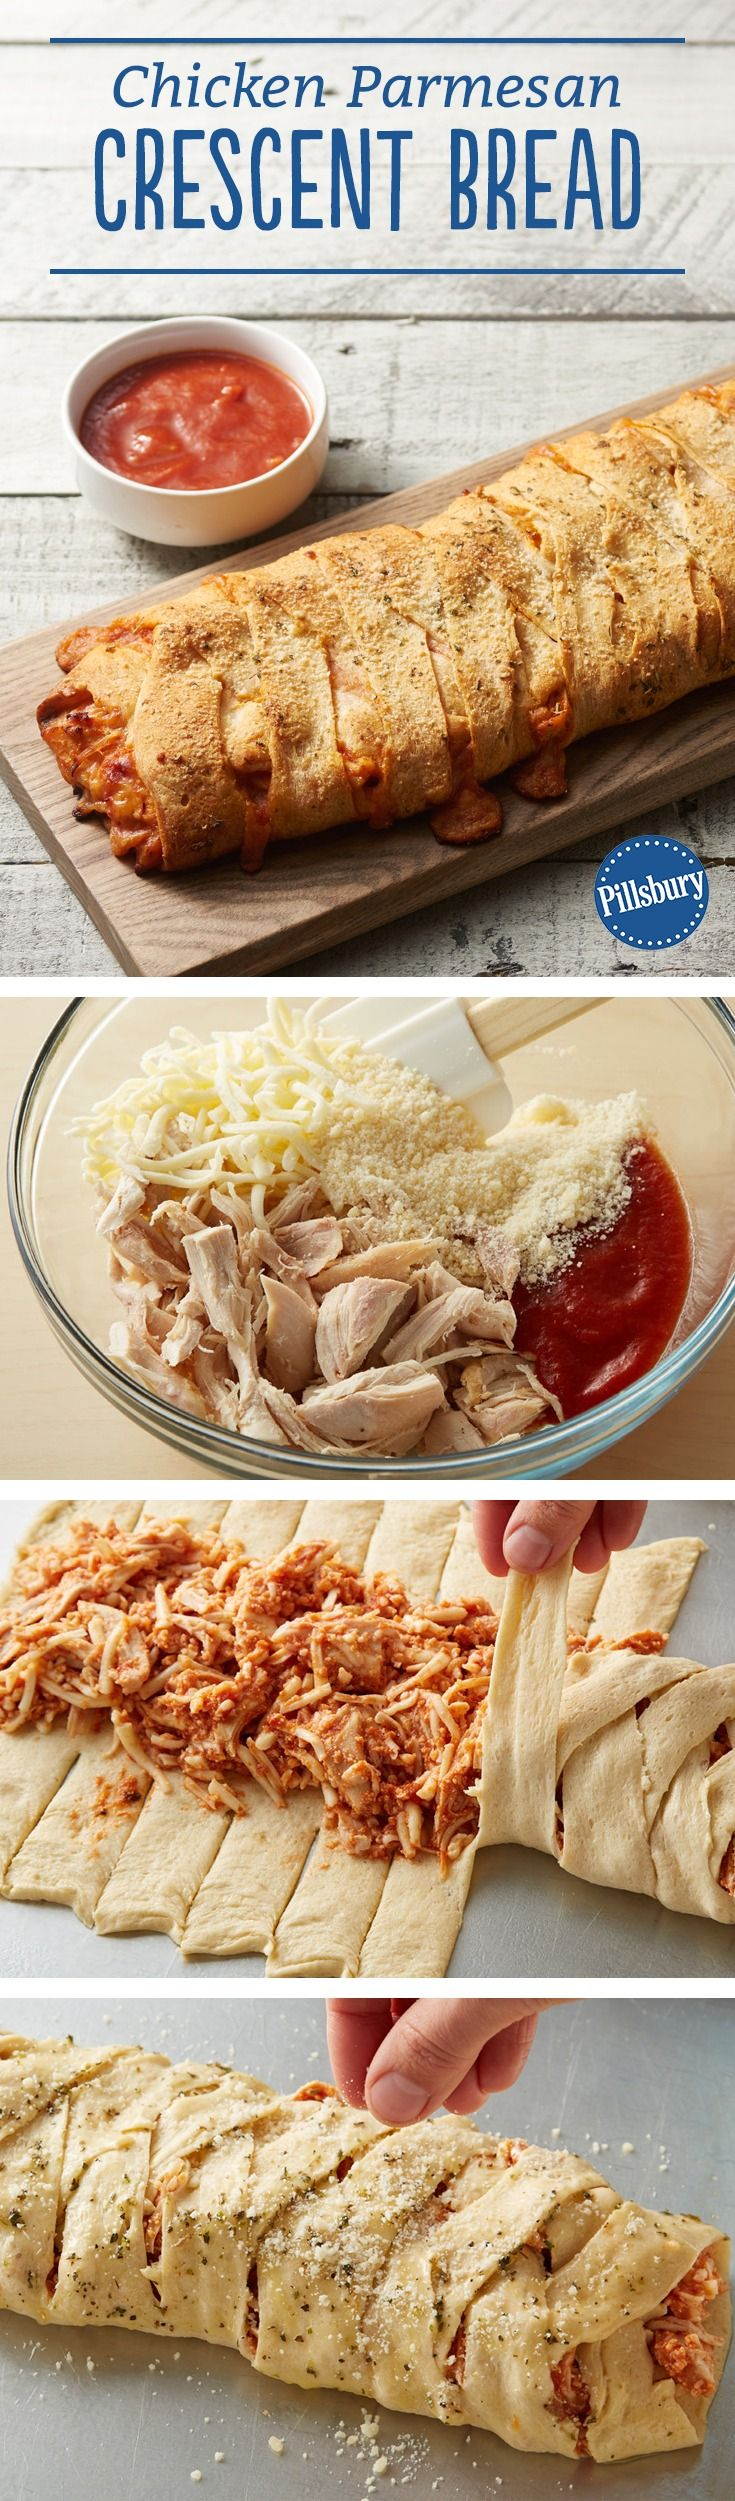 This tasty crescent braid is stuffed with the crowd-favorite flavors of chicken parmesan! It's great to serve for dinner with a Caesar salad or as an appetizer for game day. Expert tip: Looking for a shortcut? Deli rotisserie chicken is a quick and easy substitute. Remove chicken from bones, and chop into bite-size pieces.